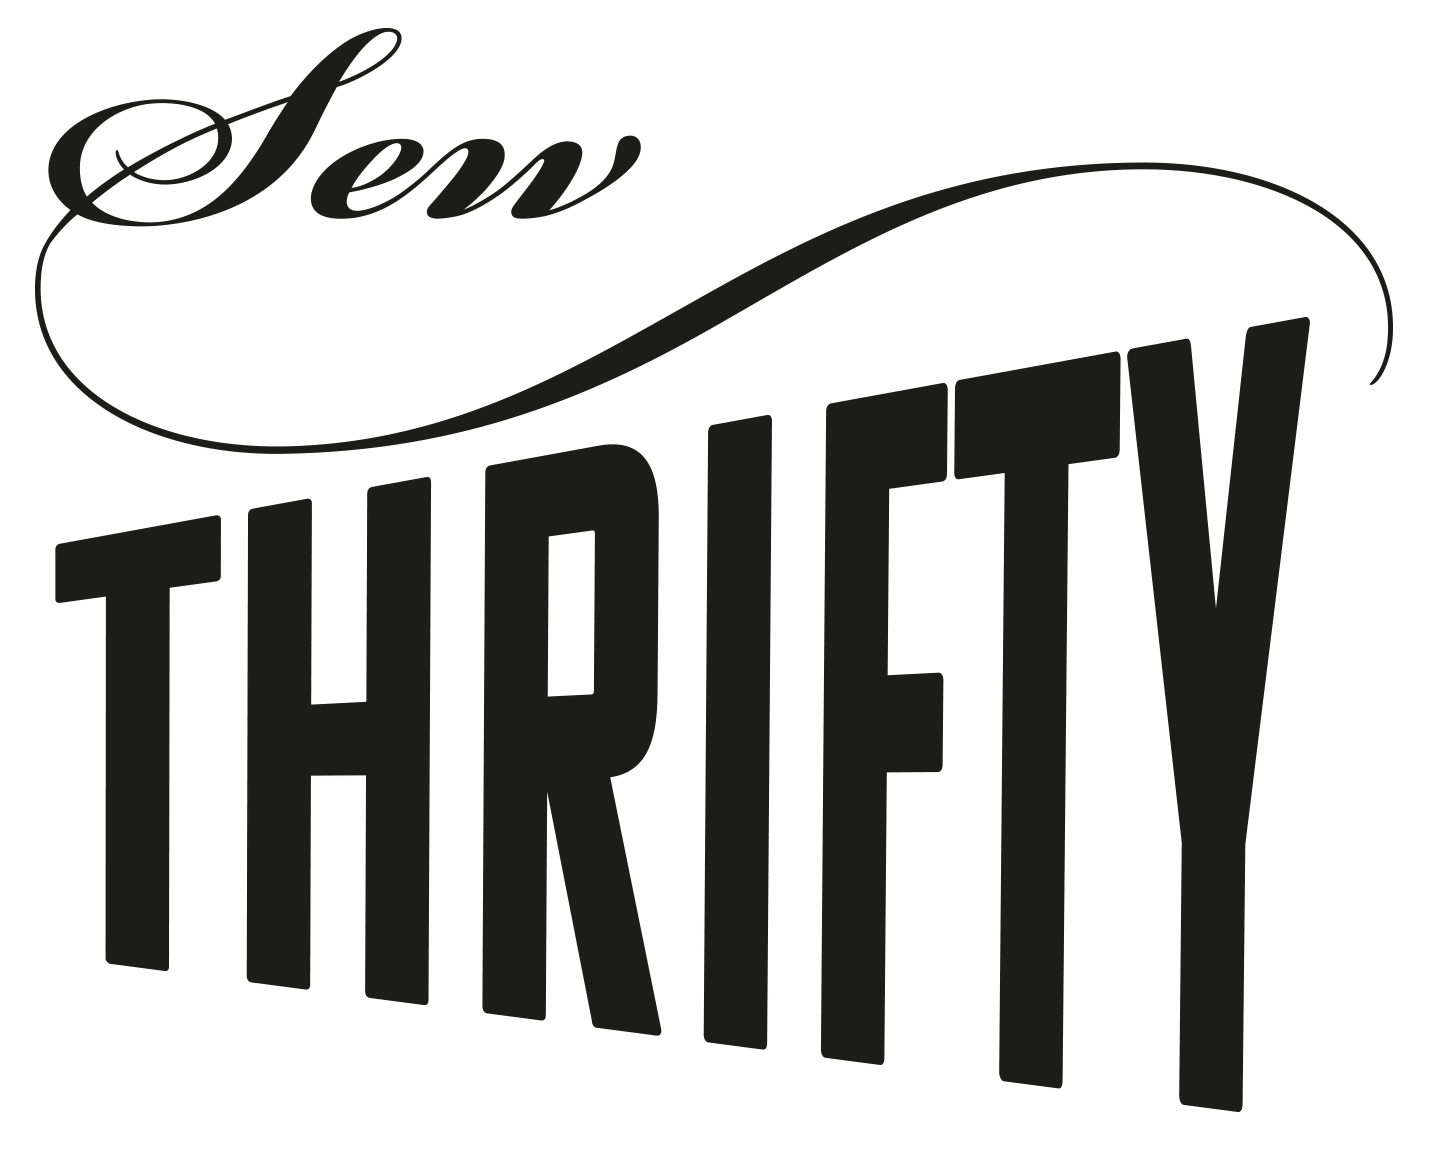 sew thrifty, sewing classes, poplar union, east London, Maud Barrett, textiles, arts and crafts, sewing, upcycling, fabric, things to do, affordable classes